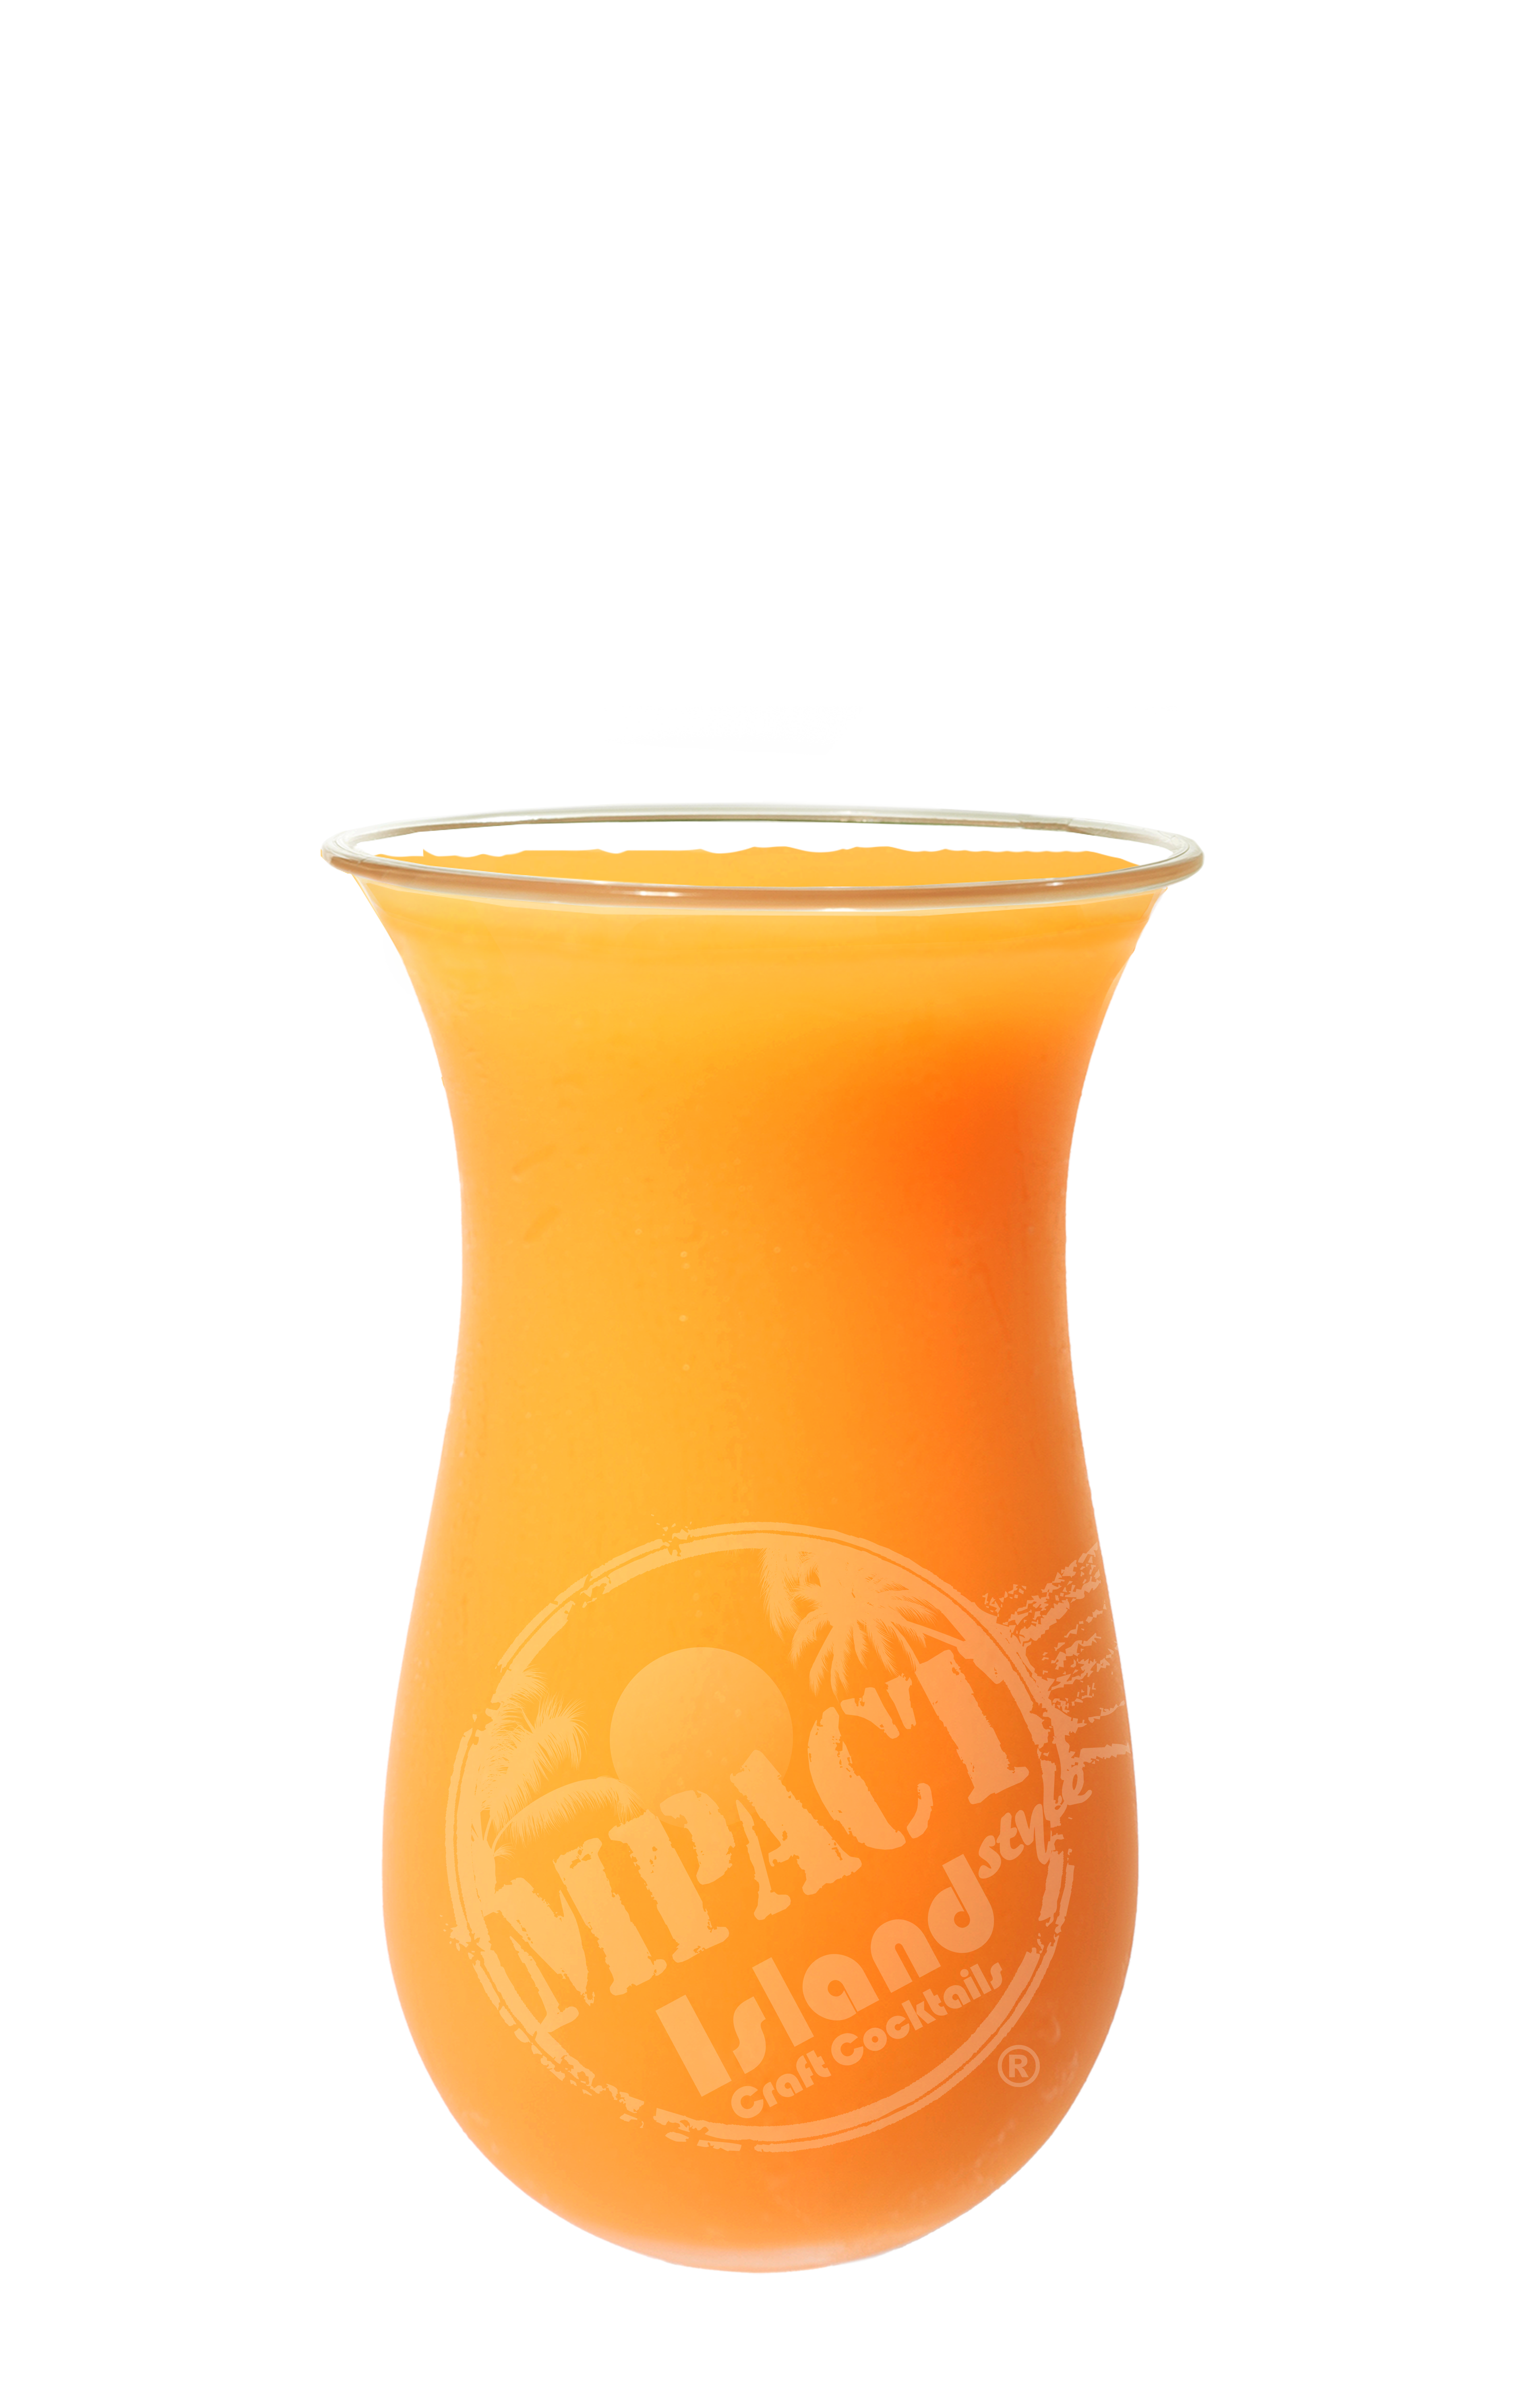 image of the sunset drink in bright orange